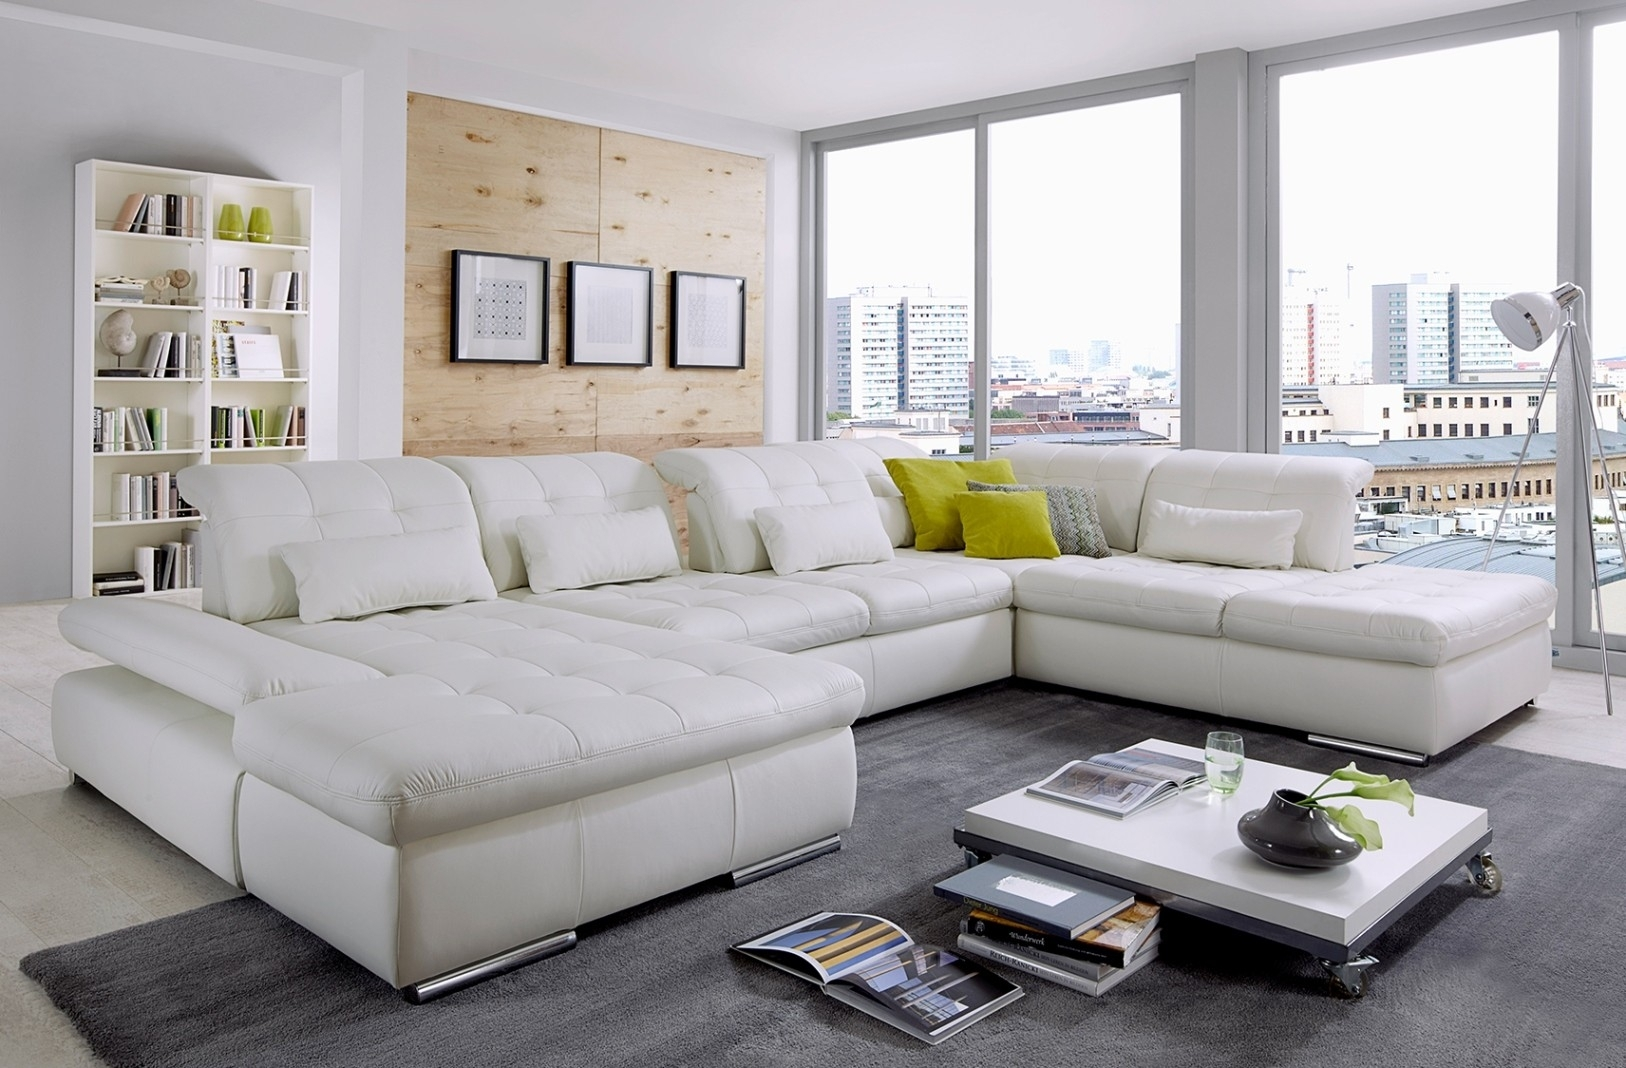 Alpine Sectional Sofa In Punch White Leather In Trinidad And Tobago Sectional Sofas (View 8 of 10)